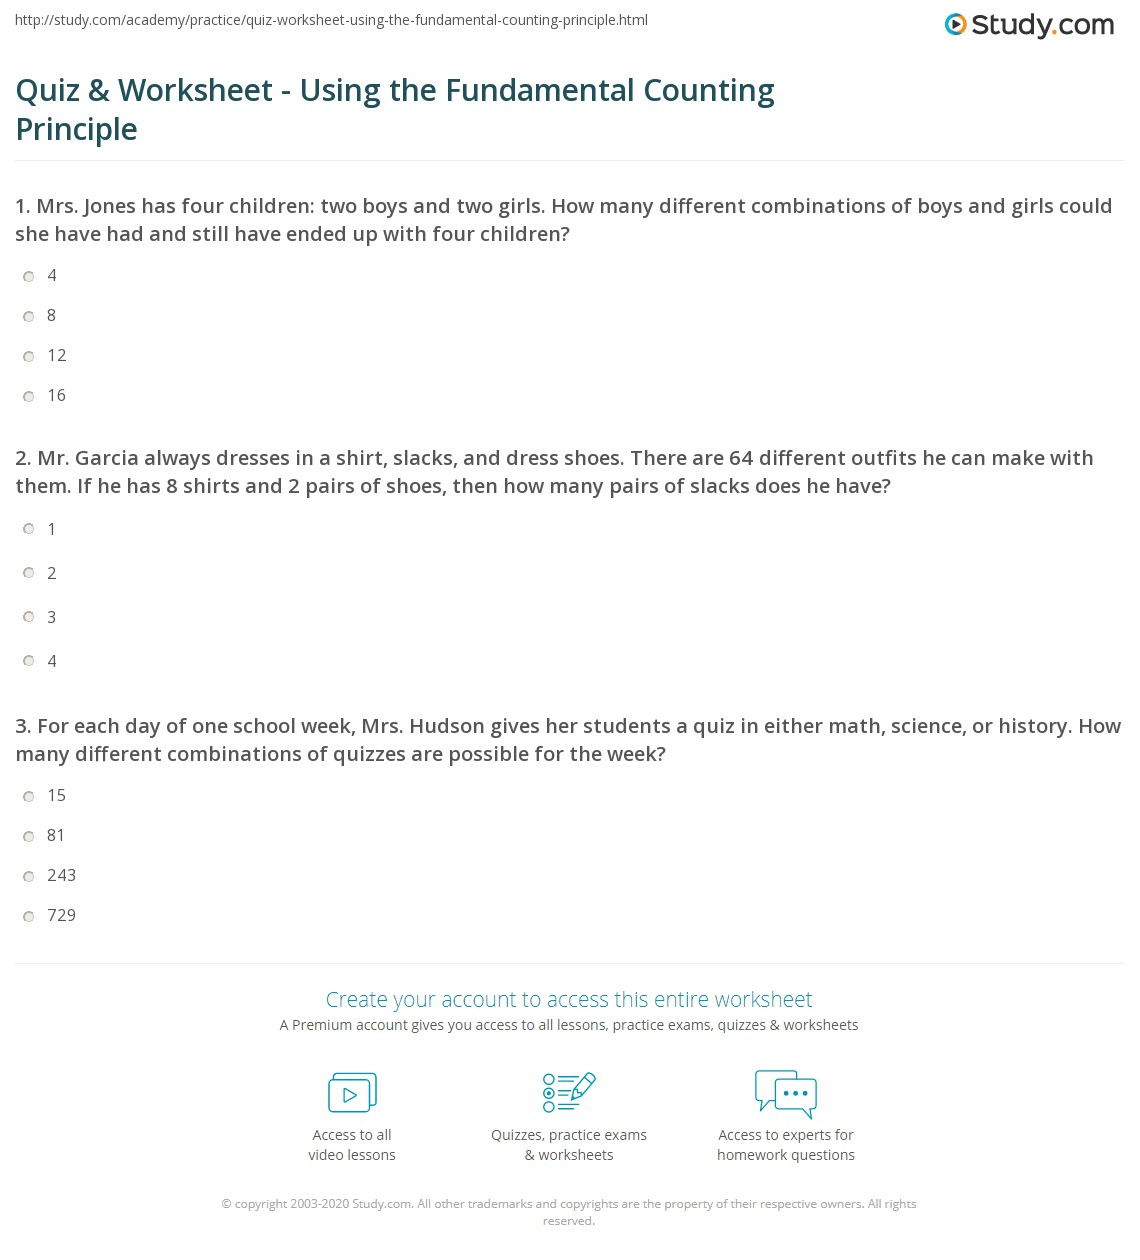 Quiz Worksheet Using the Fundamental Counting Principle – Fundamental Counting Principle Worksheet